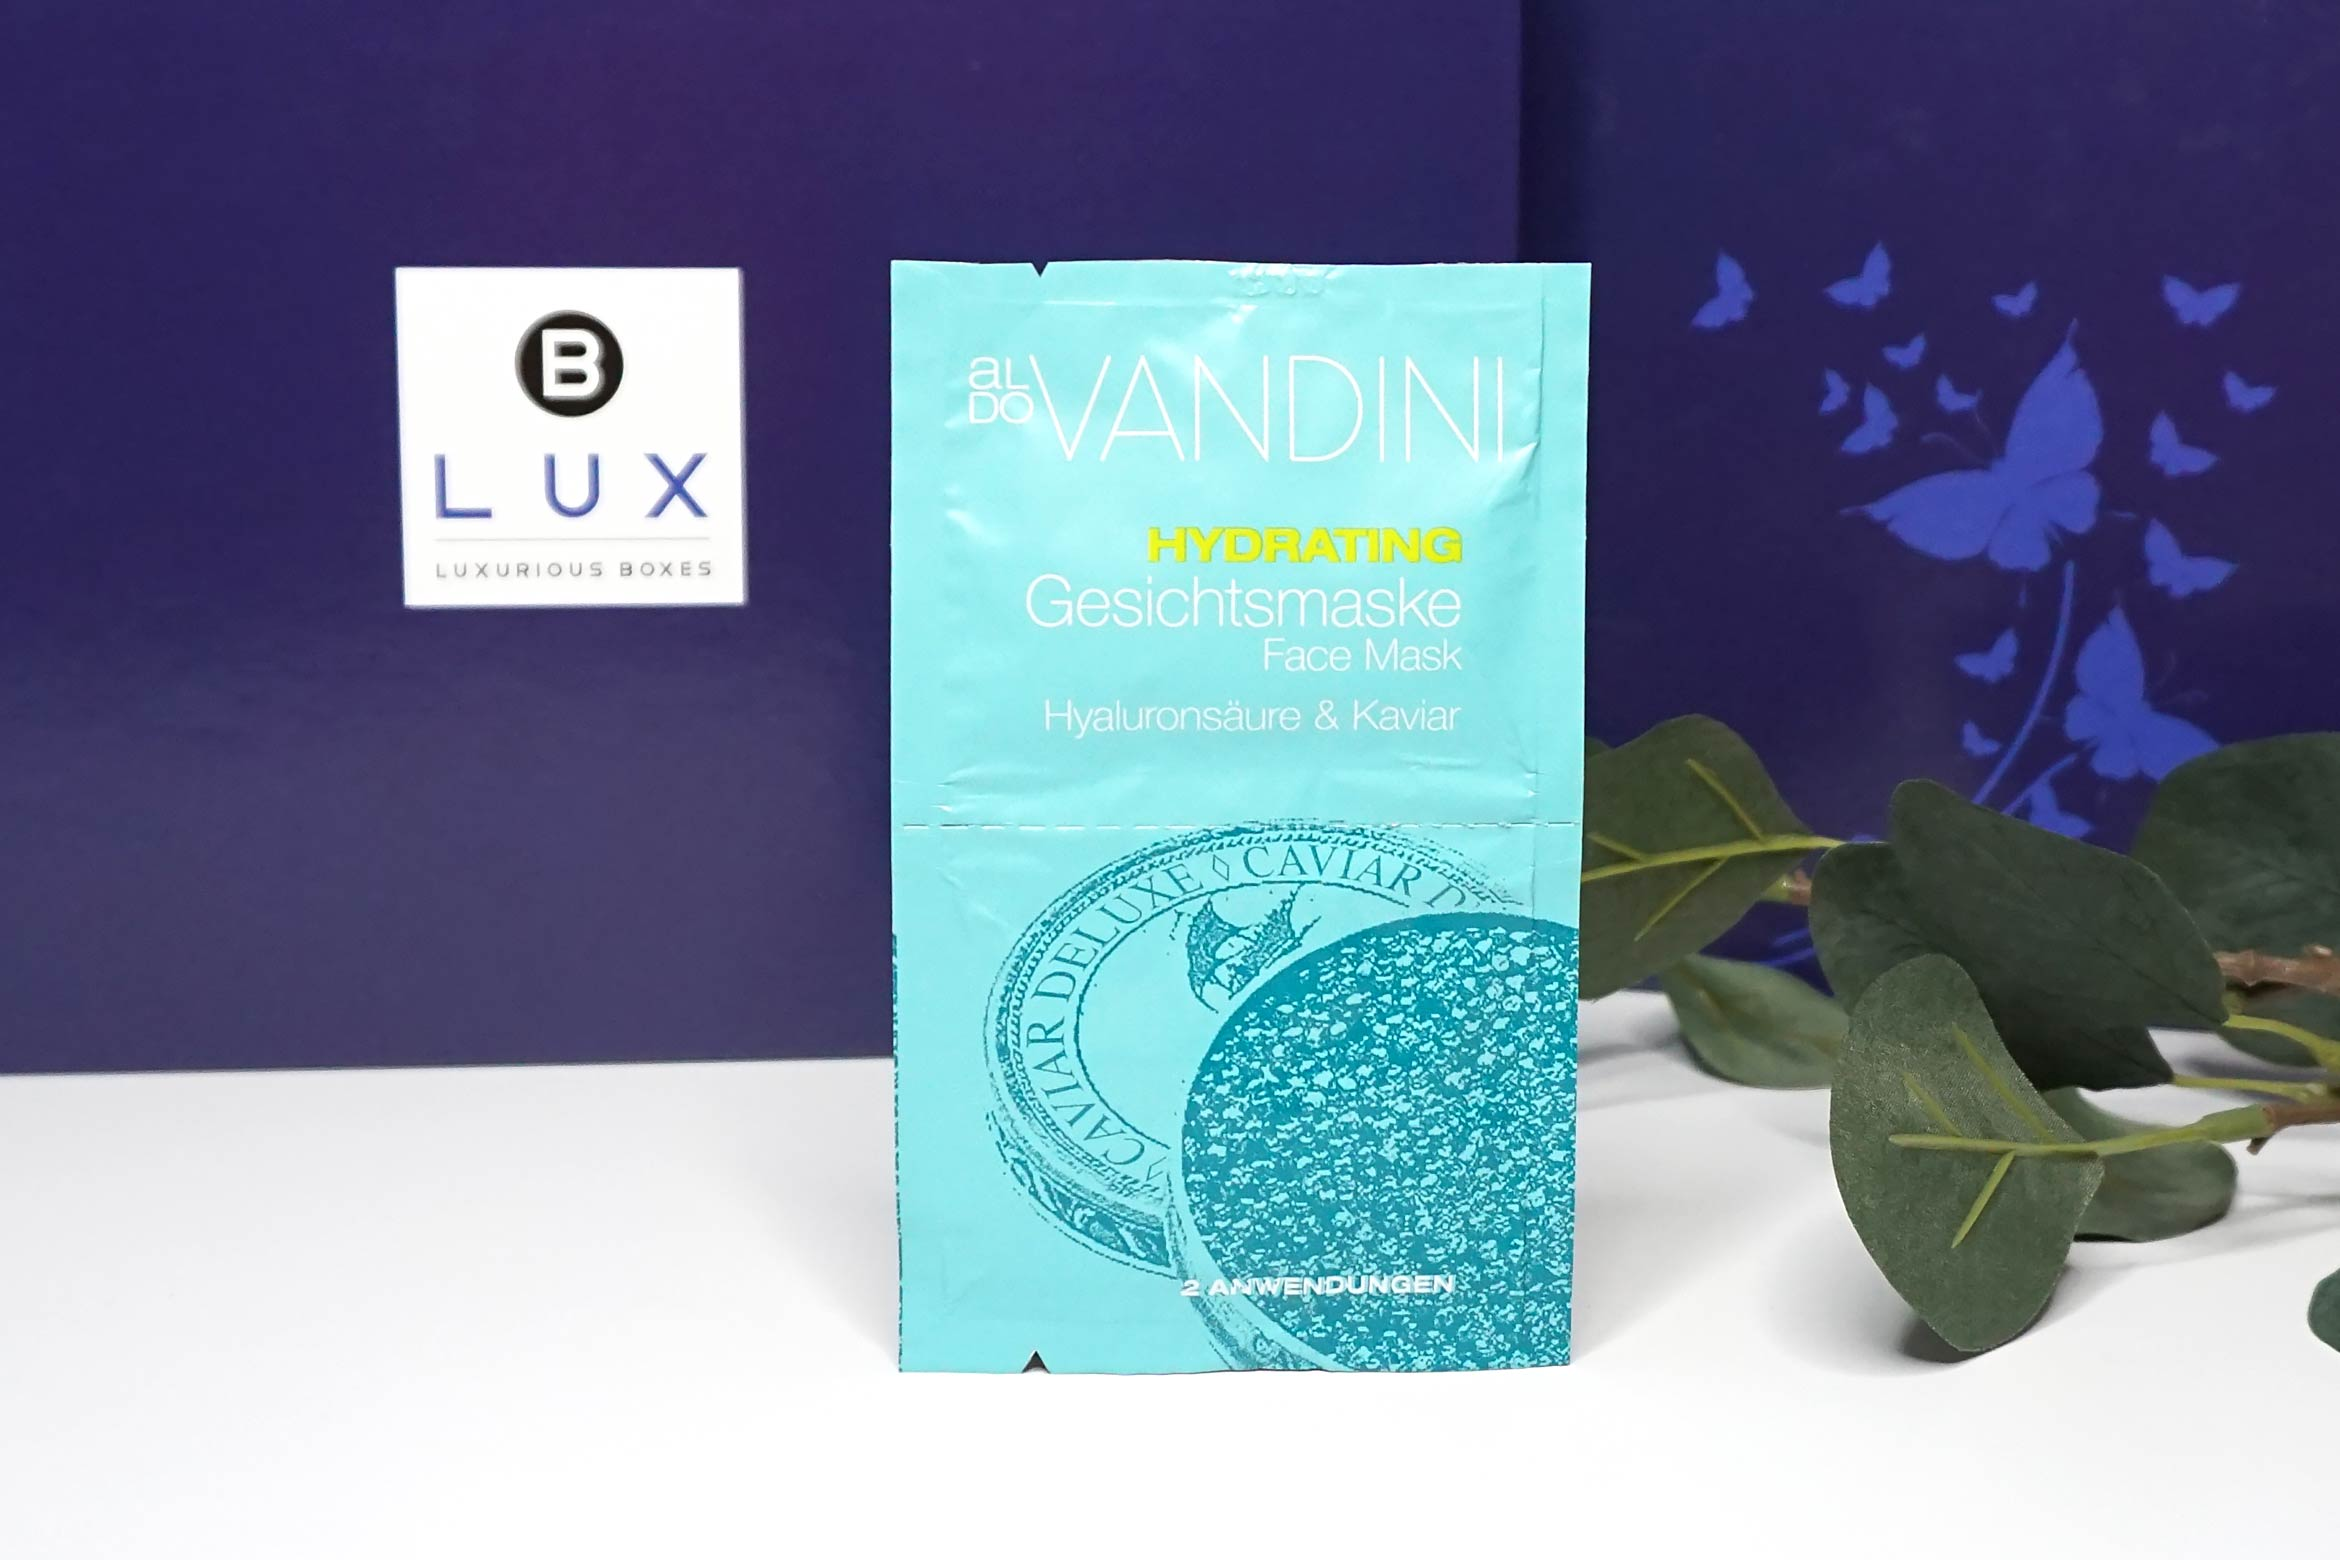 aldo-vandini-hydrating-face-mask-review